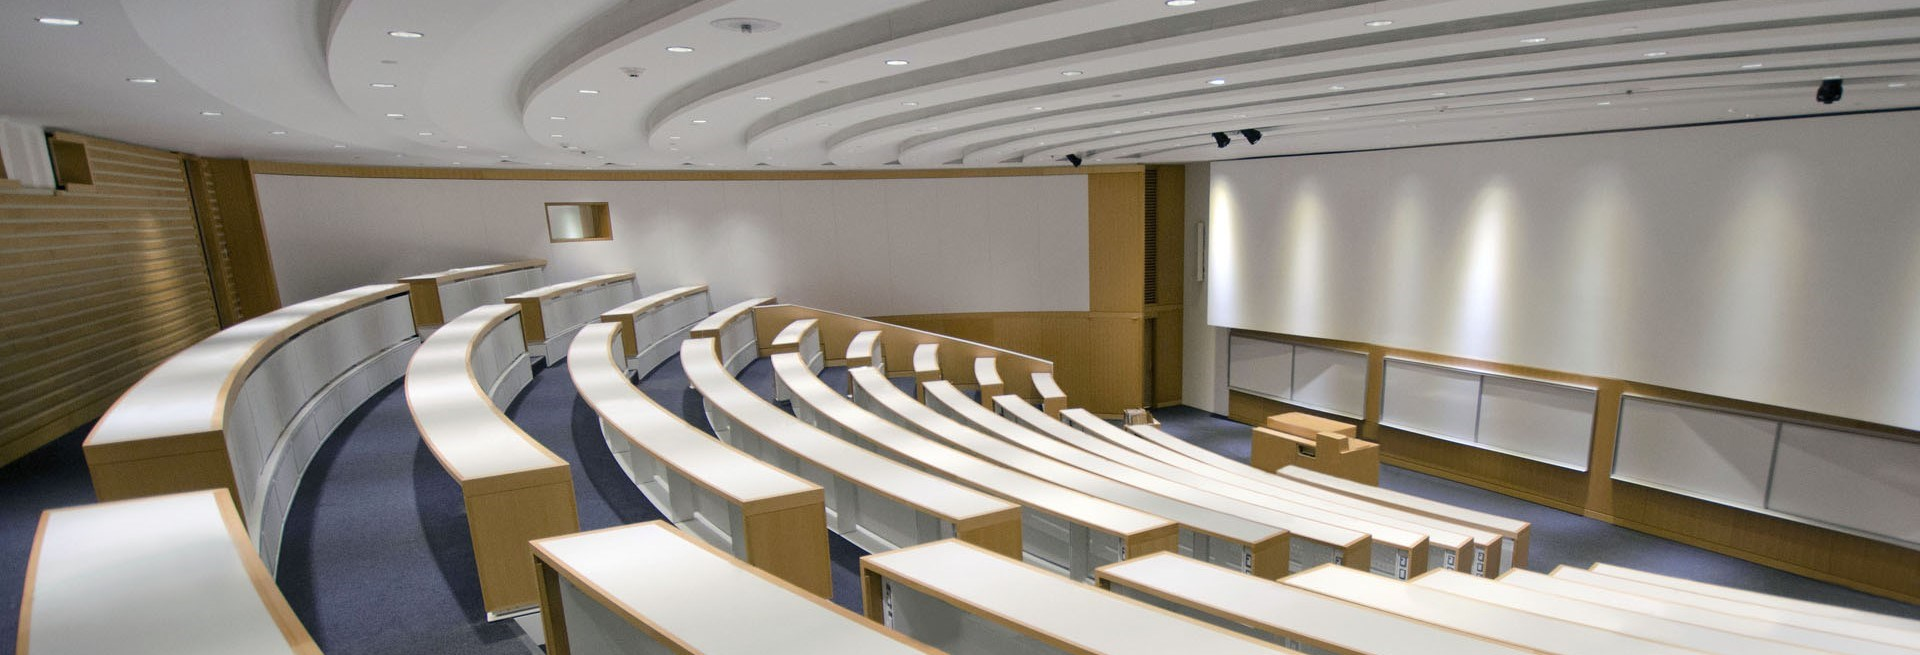 Empty lecture hall of 15 rows and a speaking podium